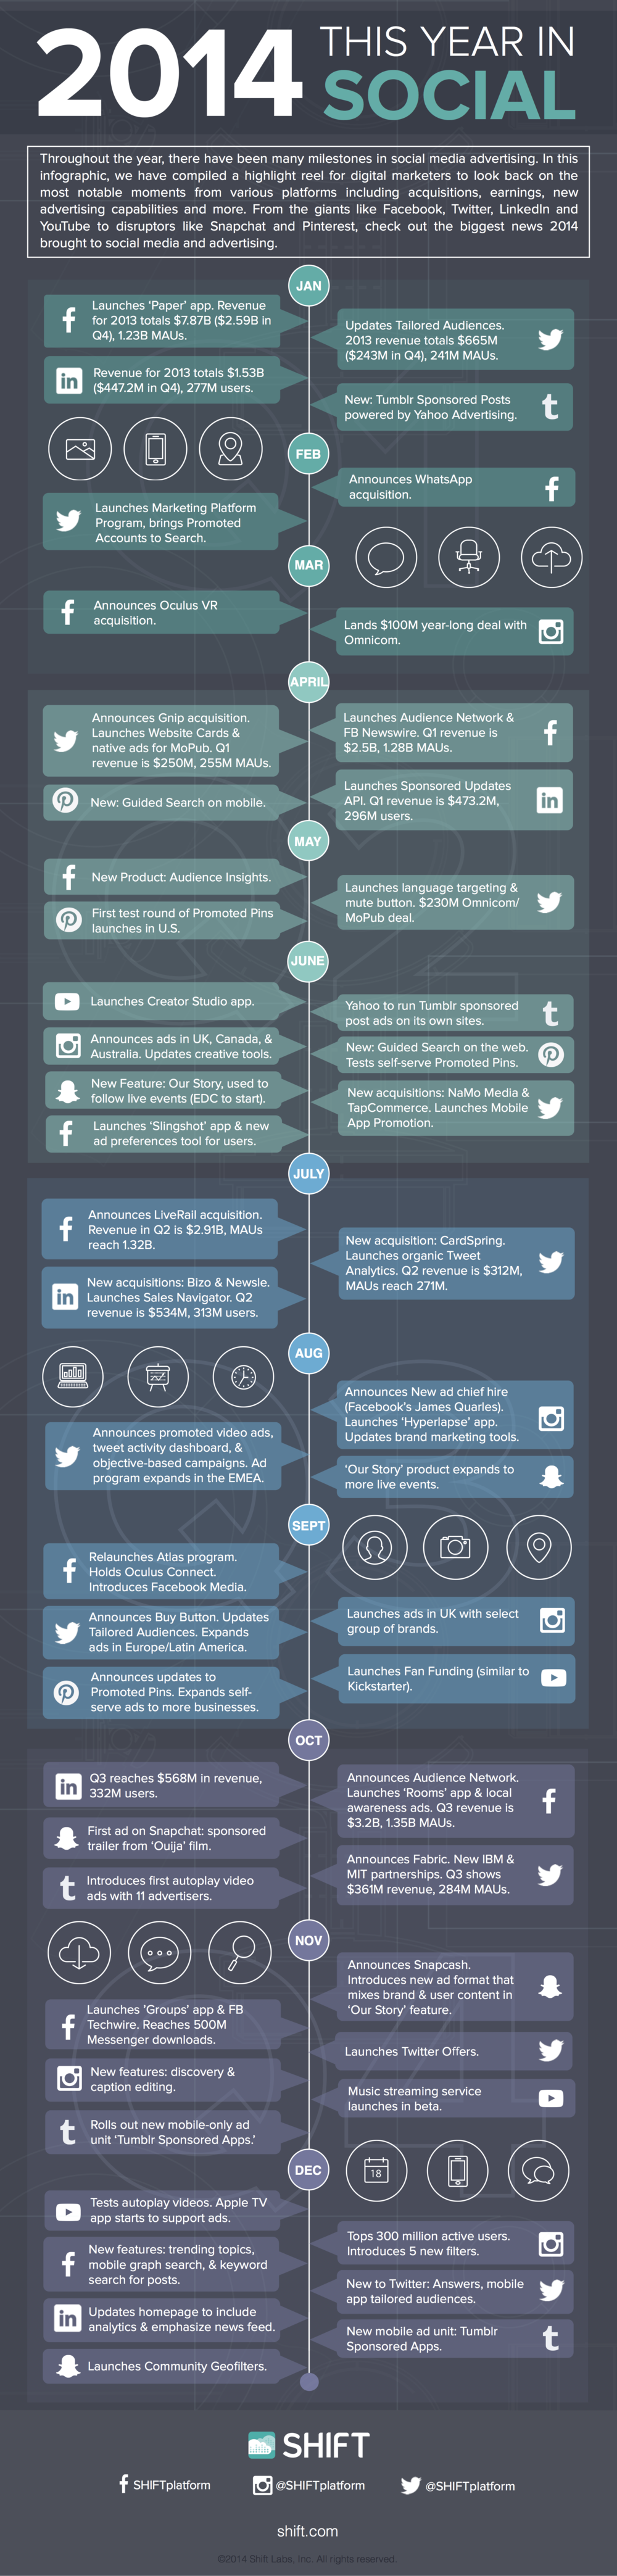 Facebook, YouTube, Twitter, Instagram, Linkedin: 2014 #SocialMedia Recap #Infographic